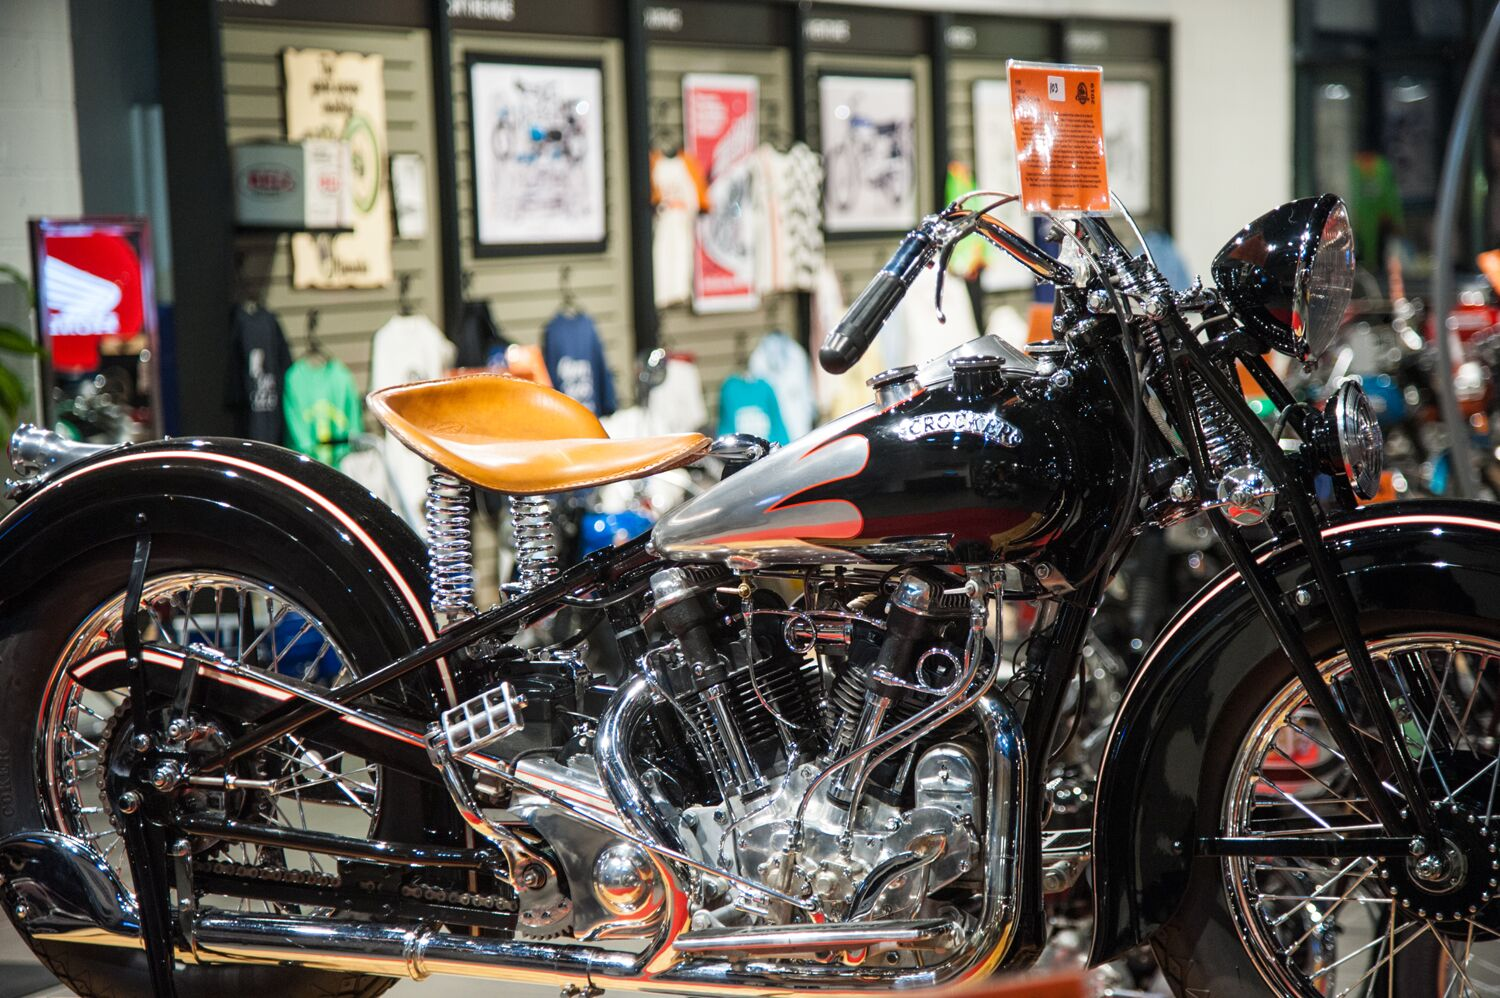 NOMINATE YOUR BIKE - FOR THE 2020 MODERN CLASSICS SHOW